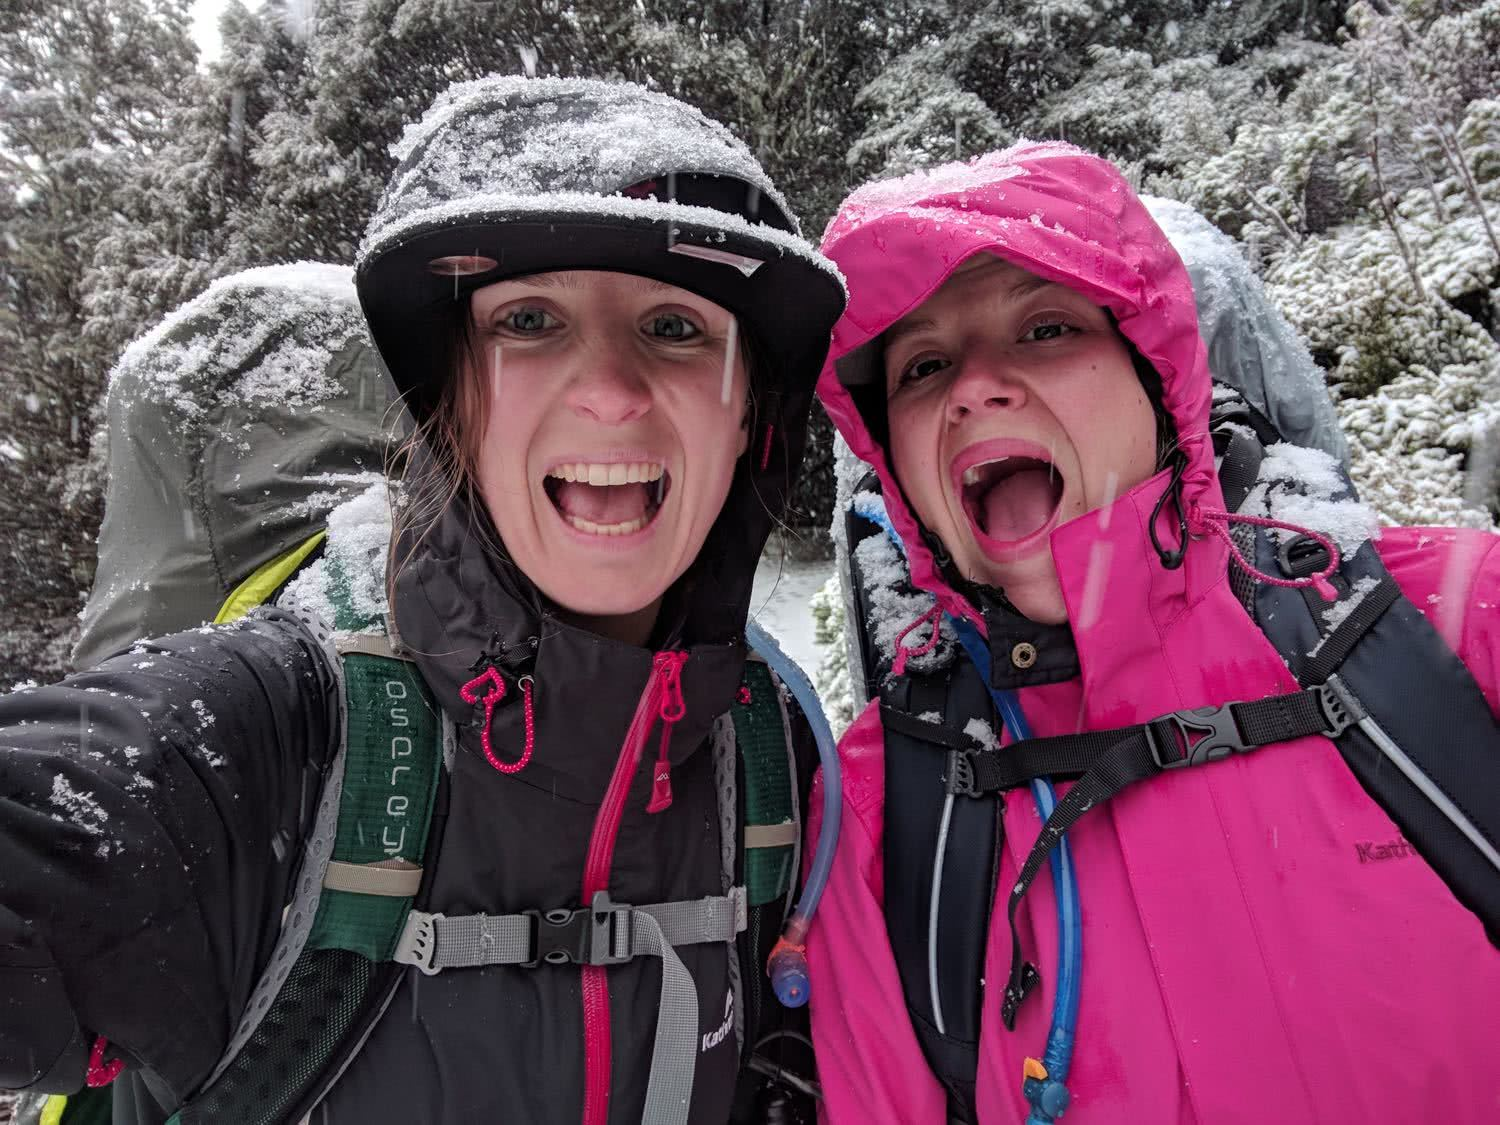 Soggy, Snowbound And Stoked // Routeburn Track (NZ), Rachel Dimond, Day 3 - Two girls in a snow storm, stoked, happy, smiles, waterproofs, backpacks, fun